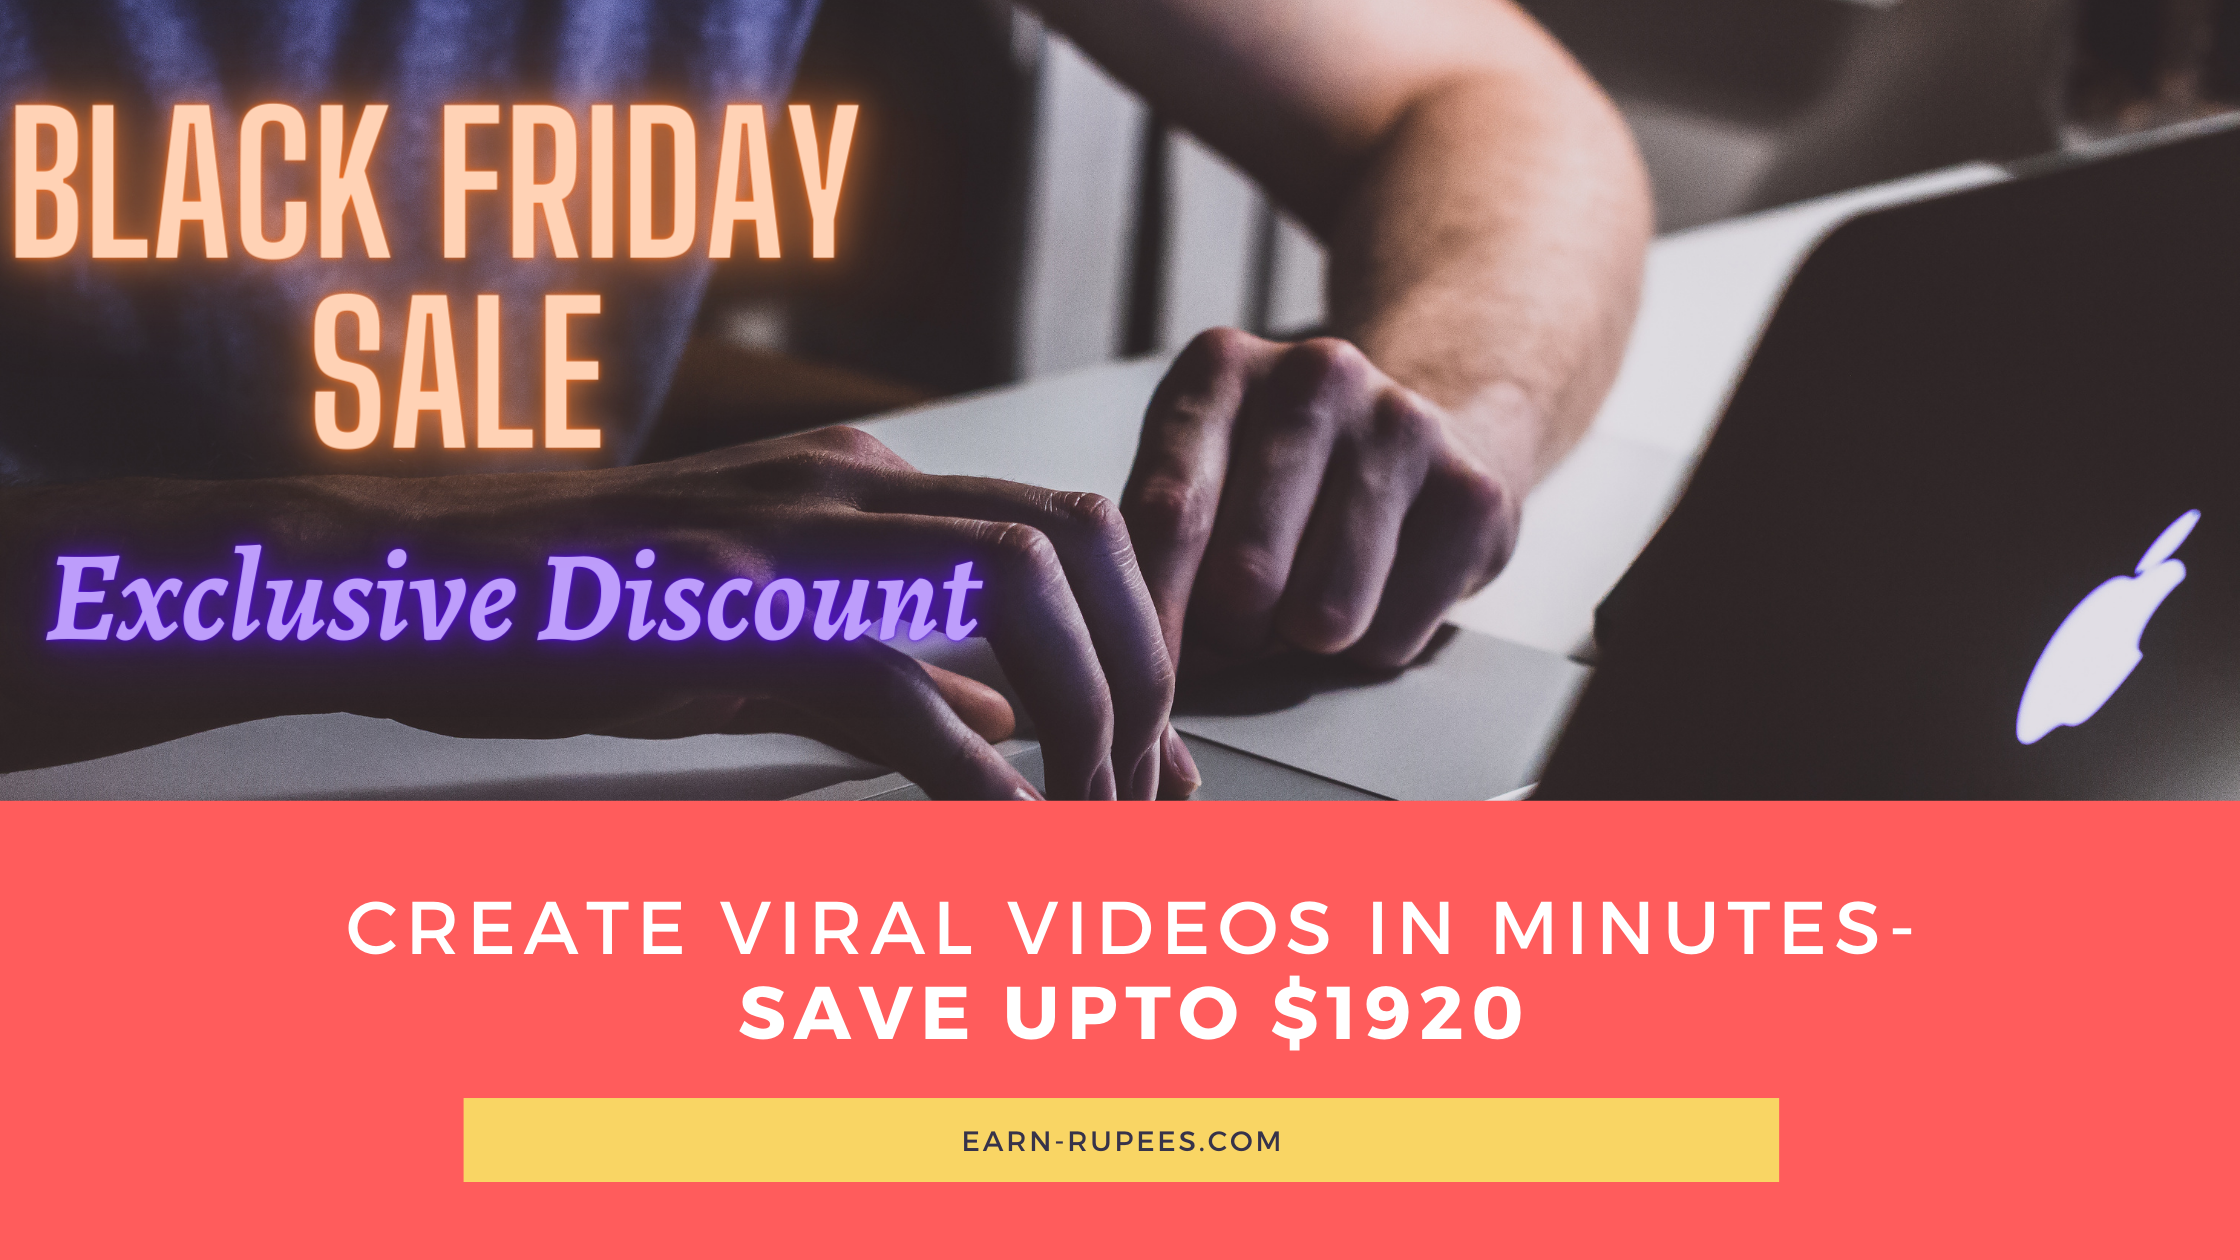 Black Friday Deals Vidnami discounts